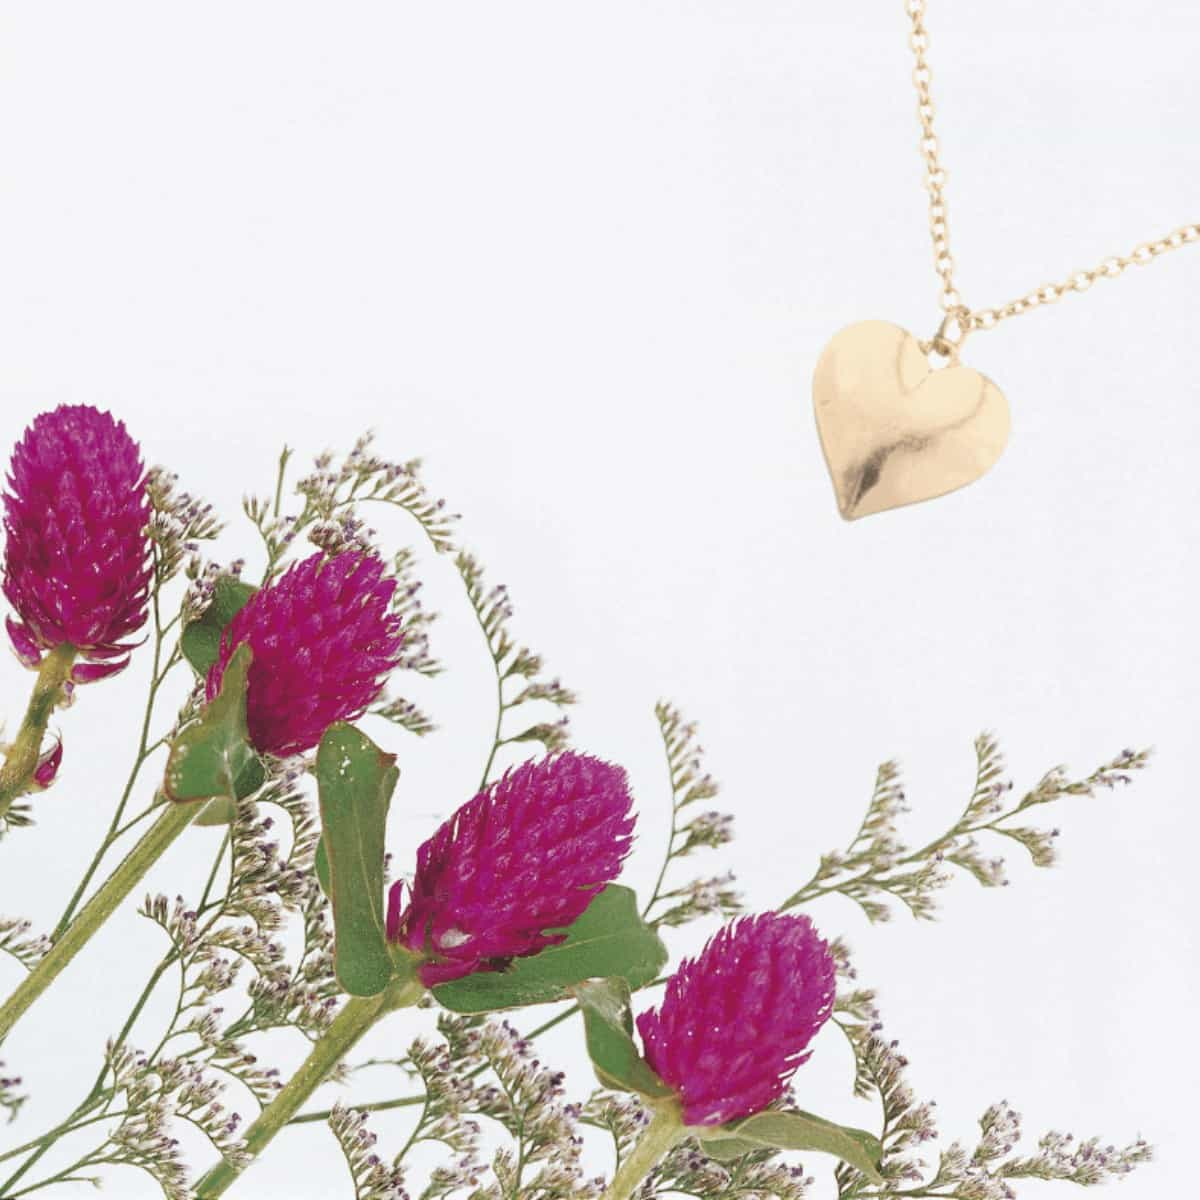 flat-lay-photo-of-pinkish-purple-flowers-in-the-bottom-left-corner-and-a-golden-heart-shaped-necklace-in-the-upper-right-corner-meant-to-show-2-healing-gifts-for-miscarriage